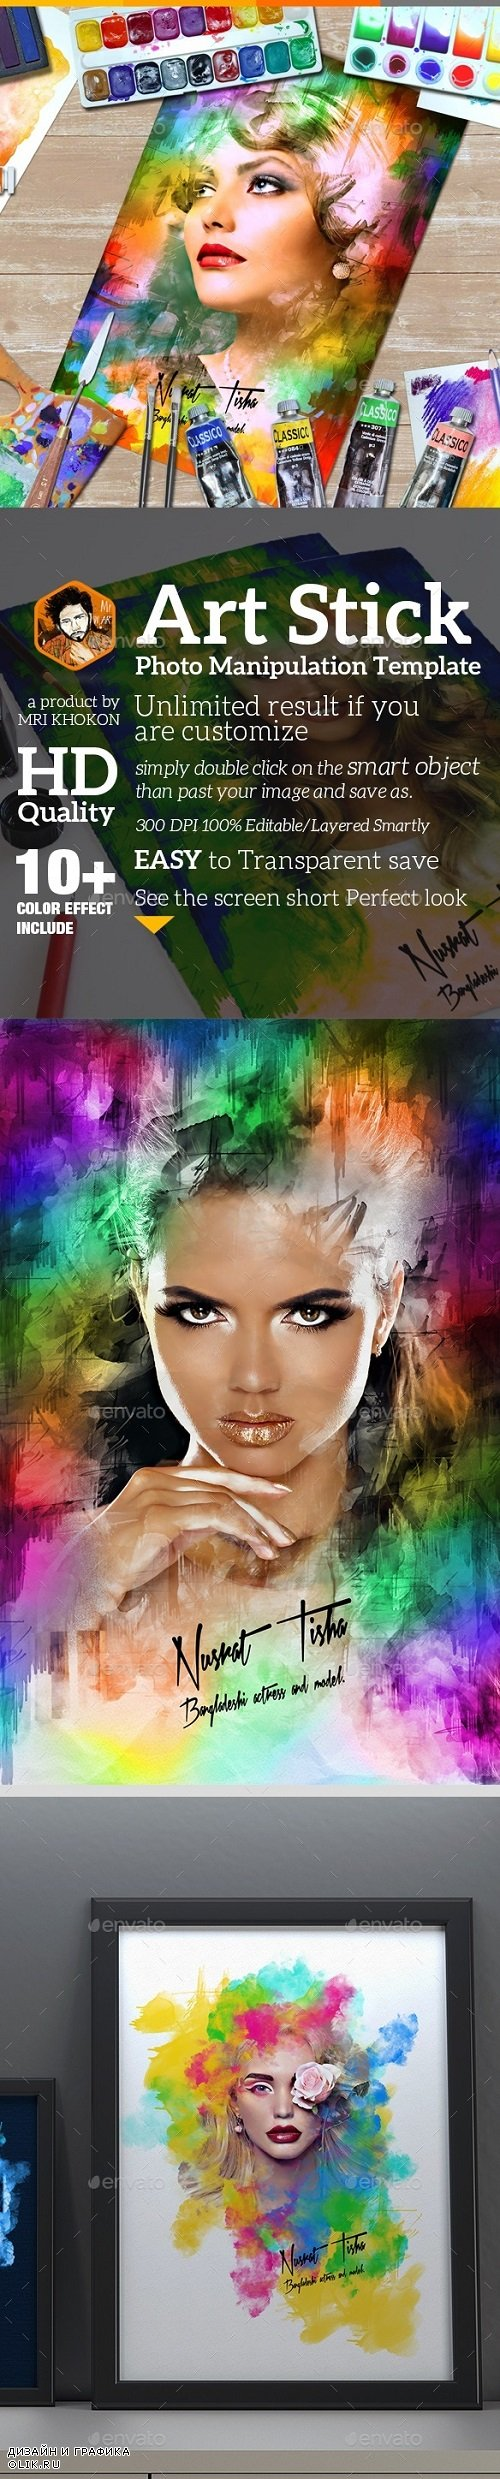 Artistic Photo Manipulation Template 19982810